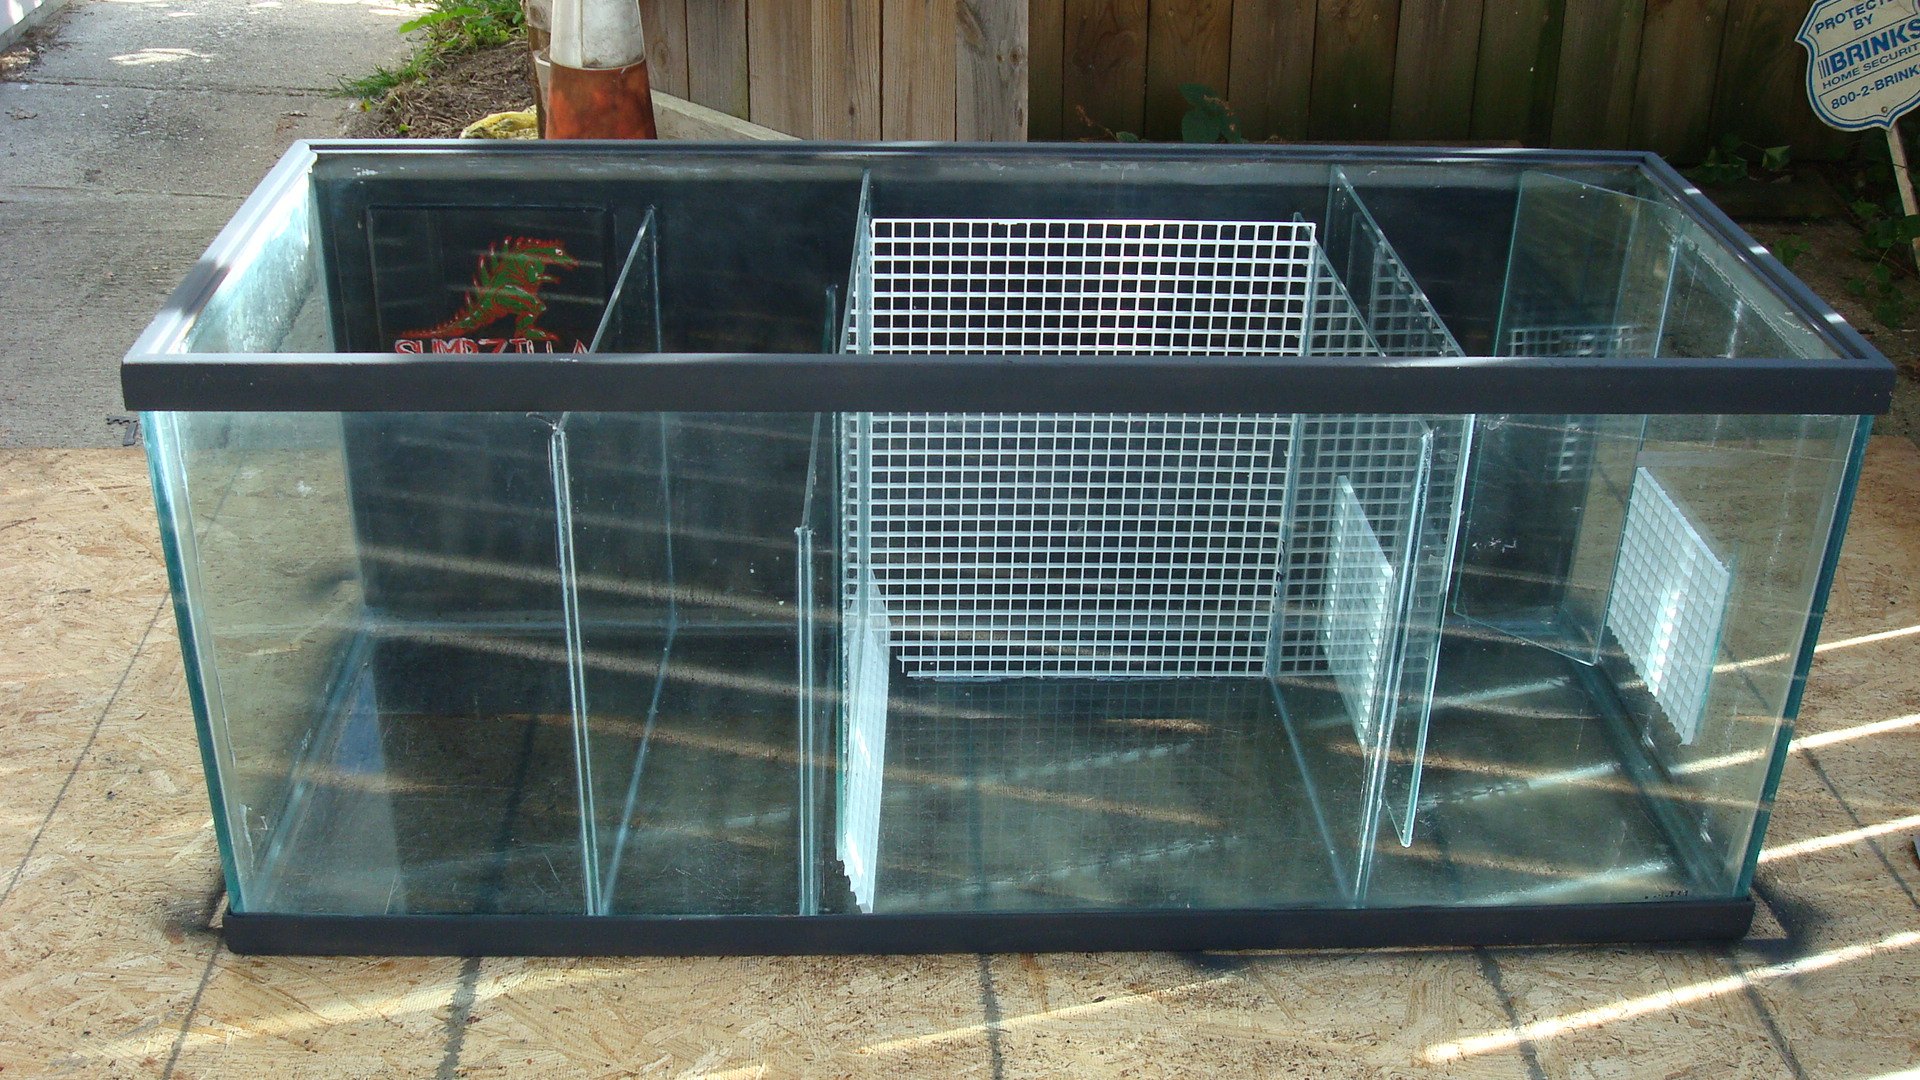 This And Any Sump Is A Very Easy Way To Increase Your Tanks Efficiency Volume If You Have Small Stand Will Need Get Creative